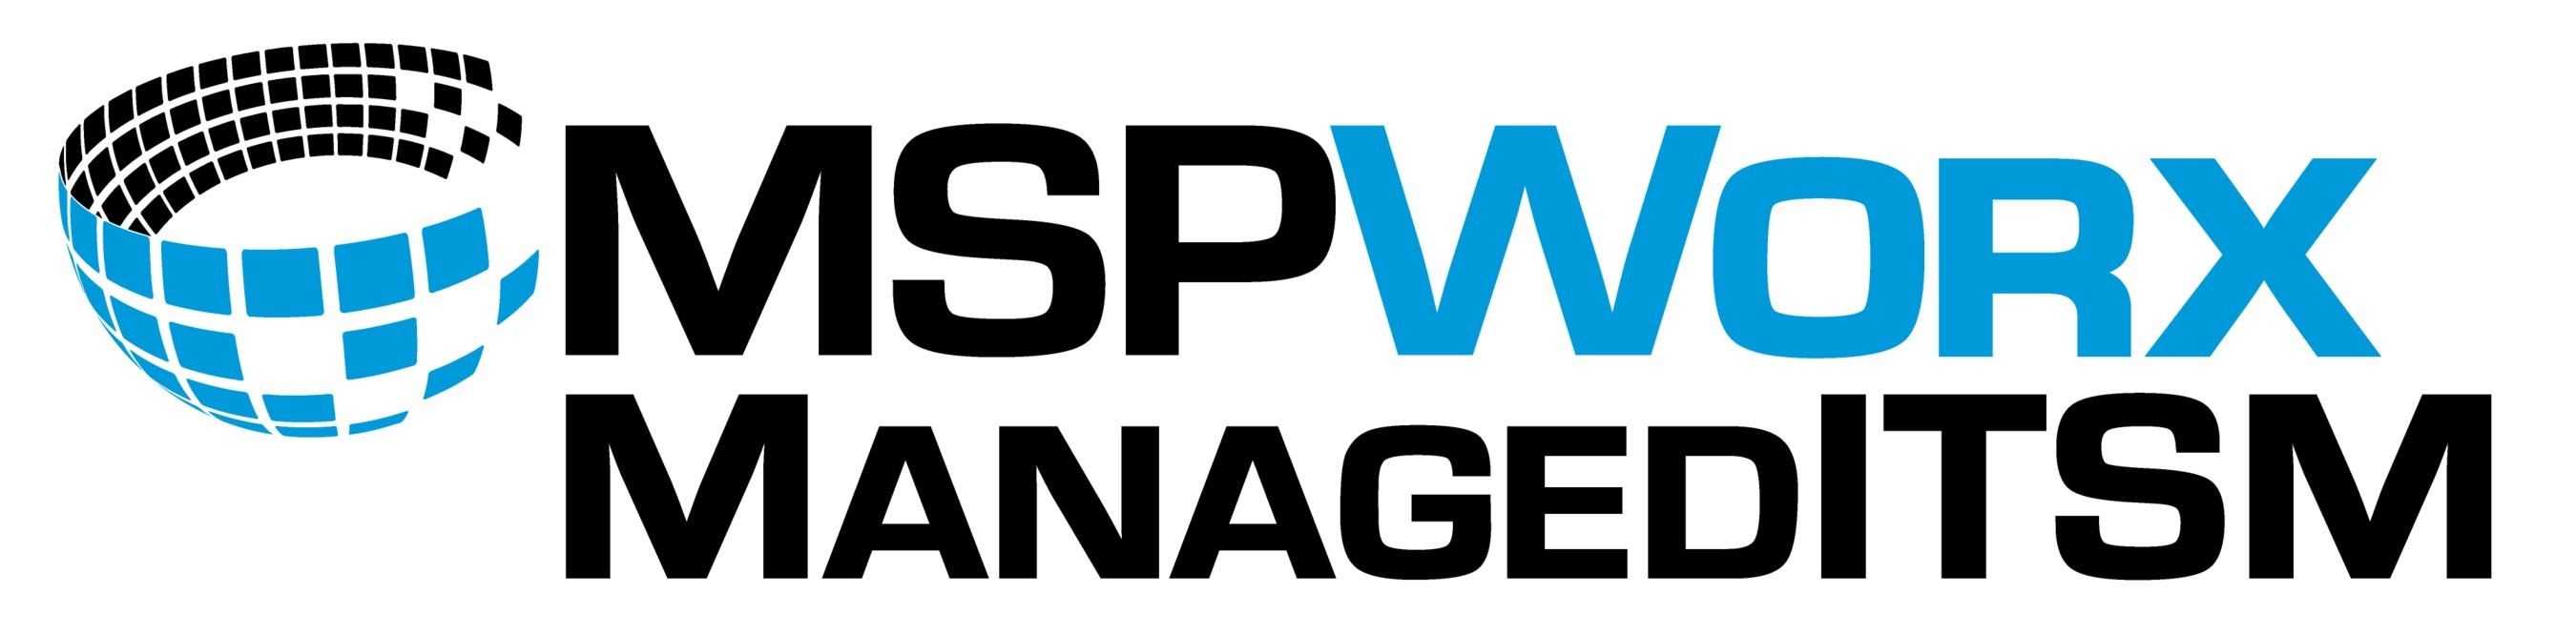 Logo : MSPWorx (CNW Group/CareWorx Corporation)